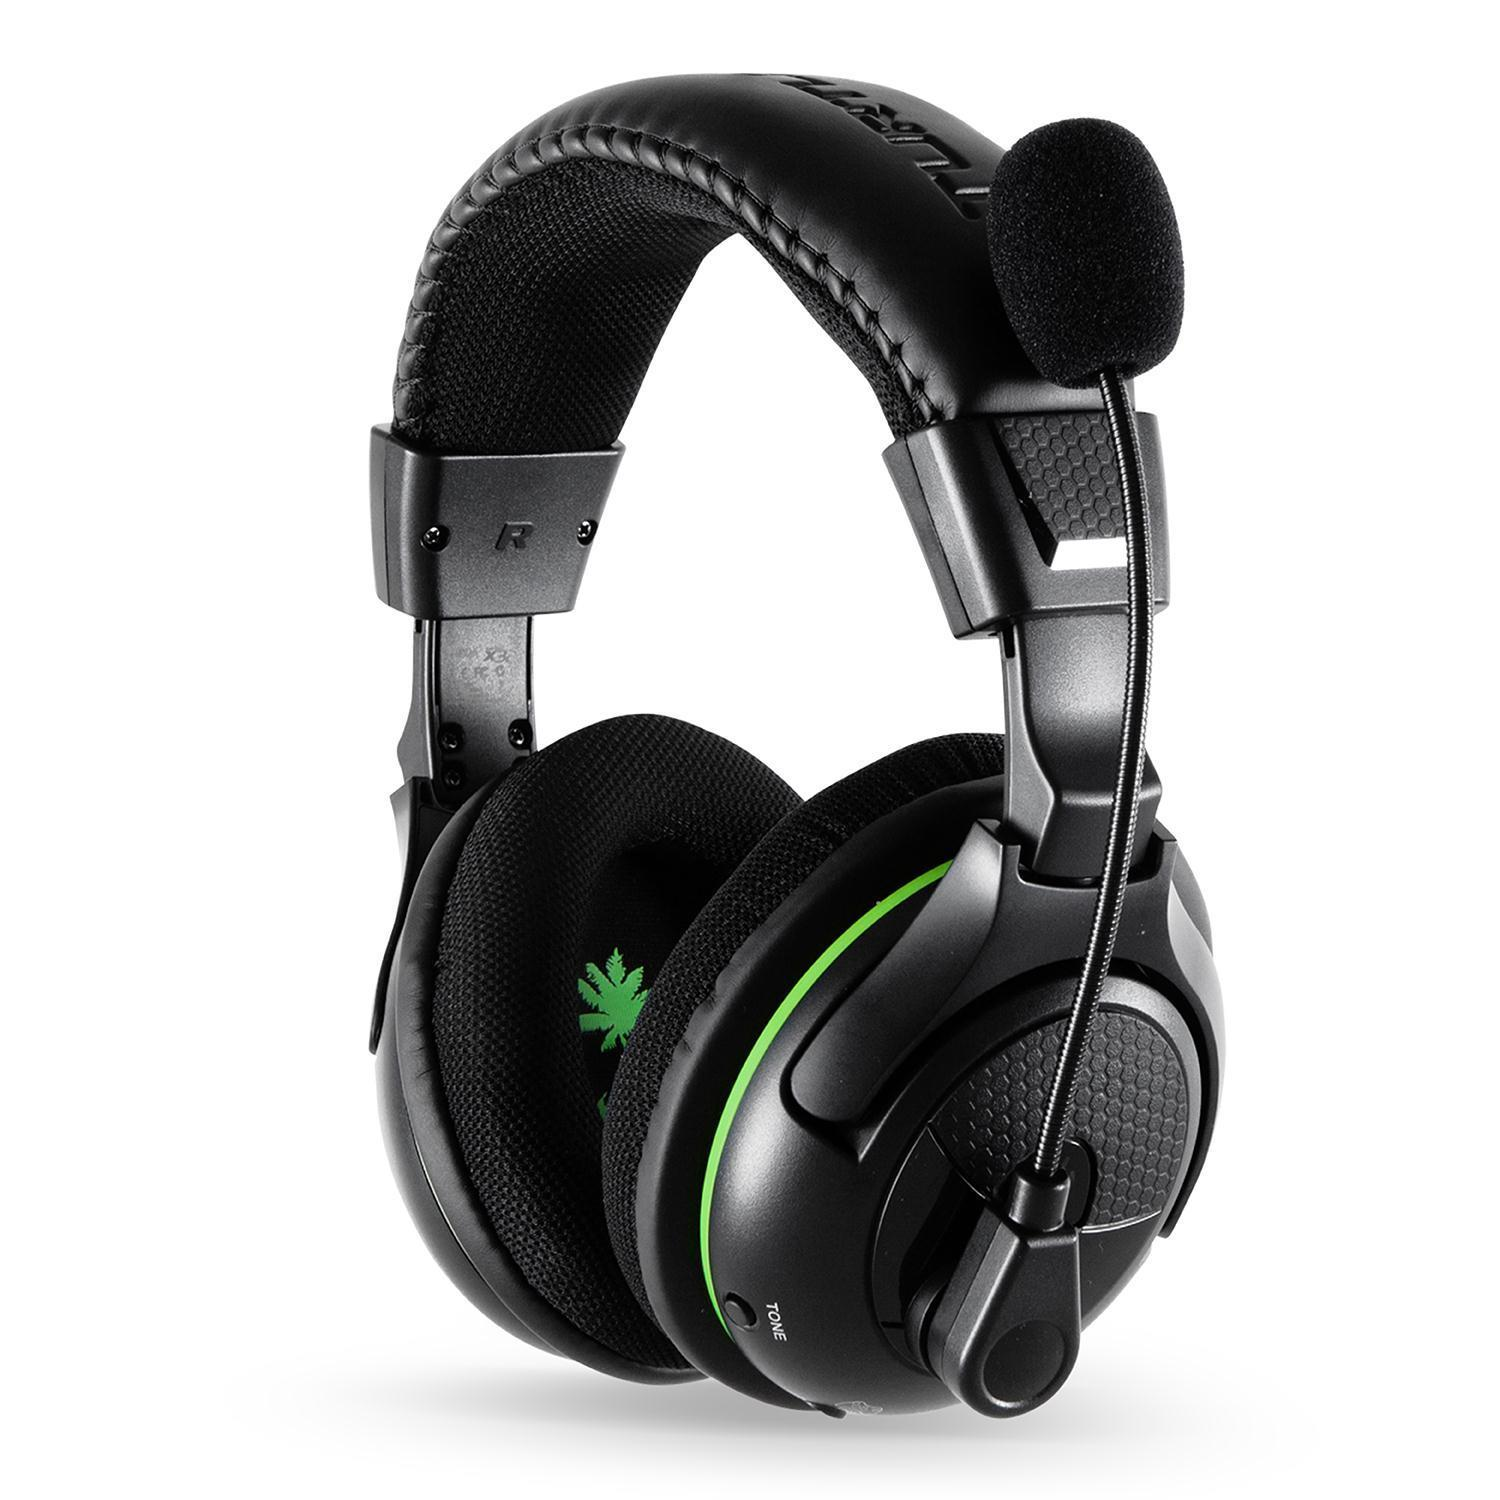 Turtle Beach Ear Force X32 Wireless Amplified Stereo Sound Headset for Xbox 360